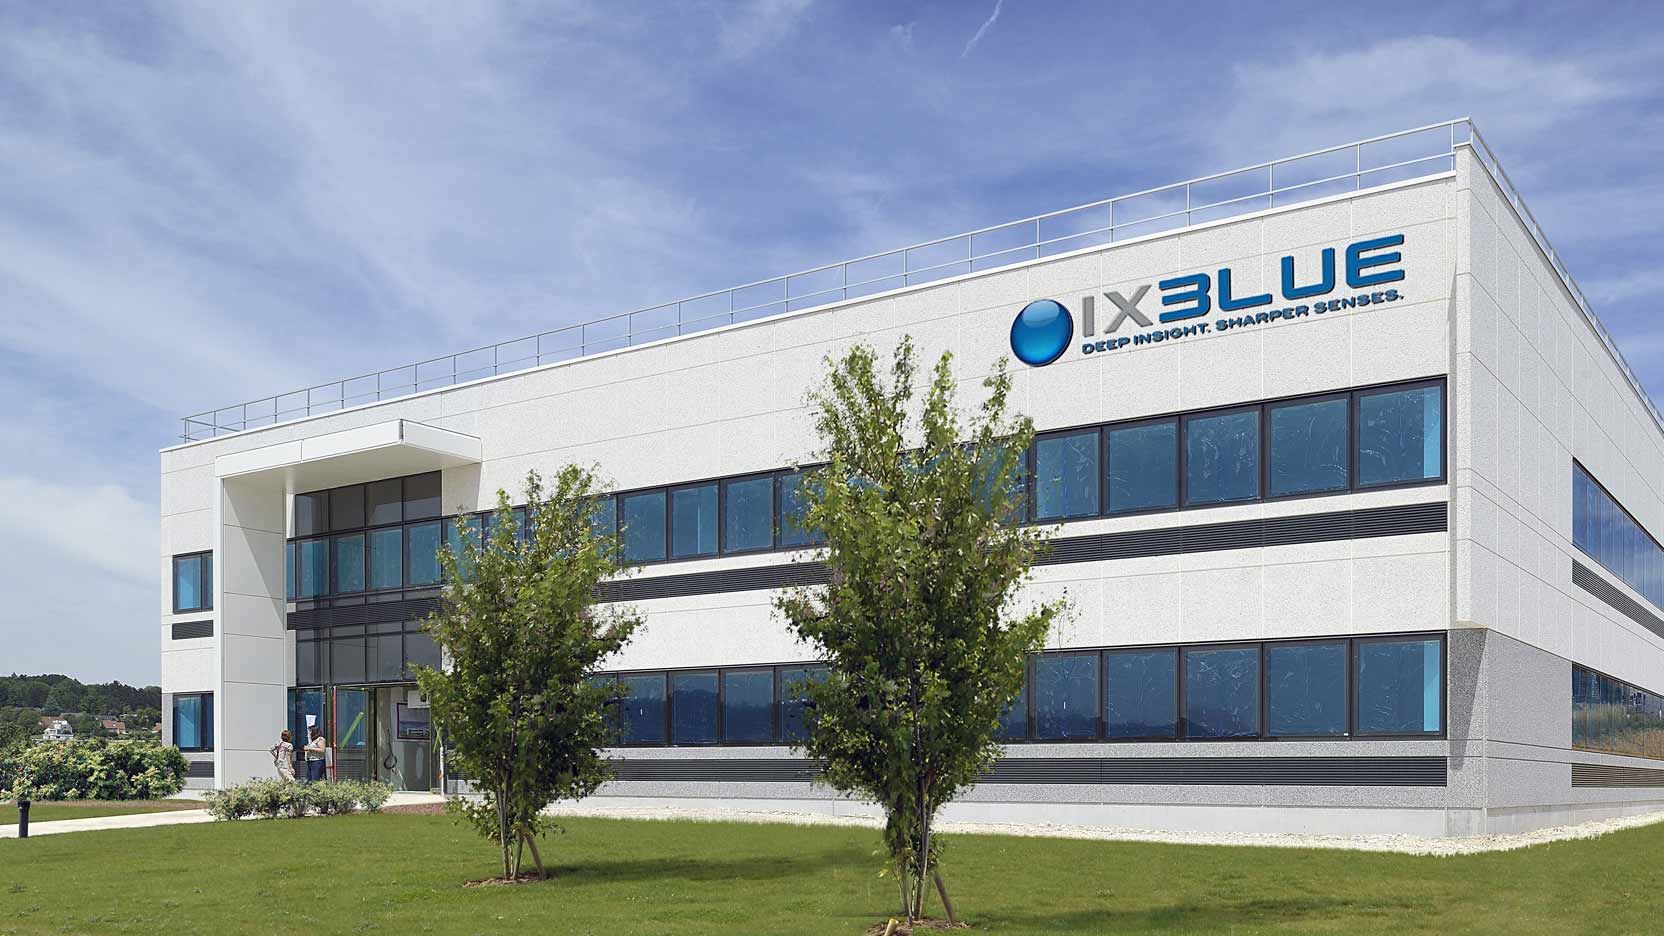 The GA Group delivers the IX-BLUE laboratories in Besançon